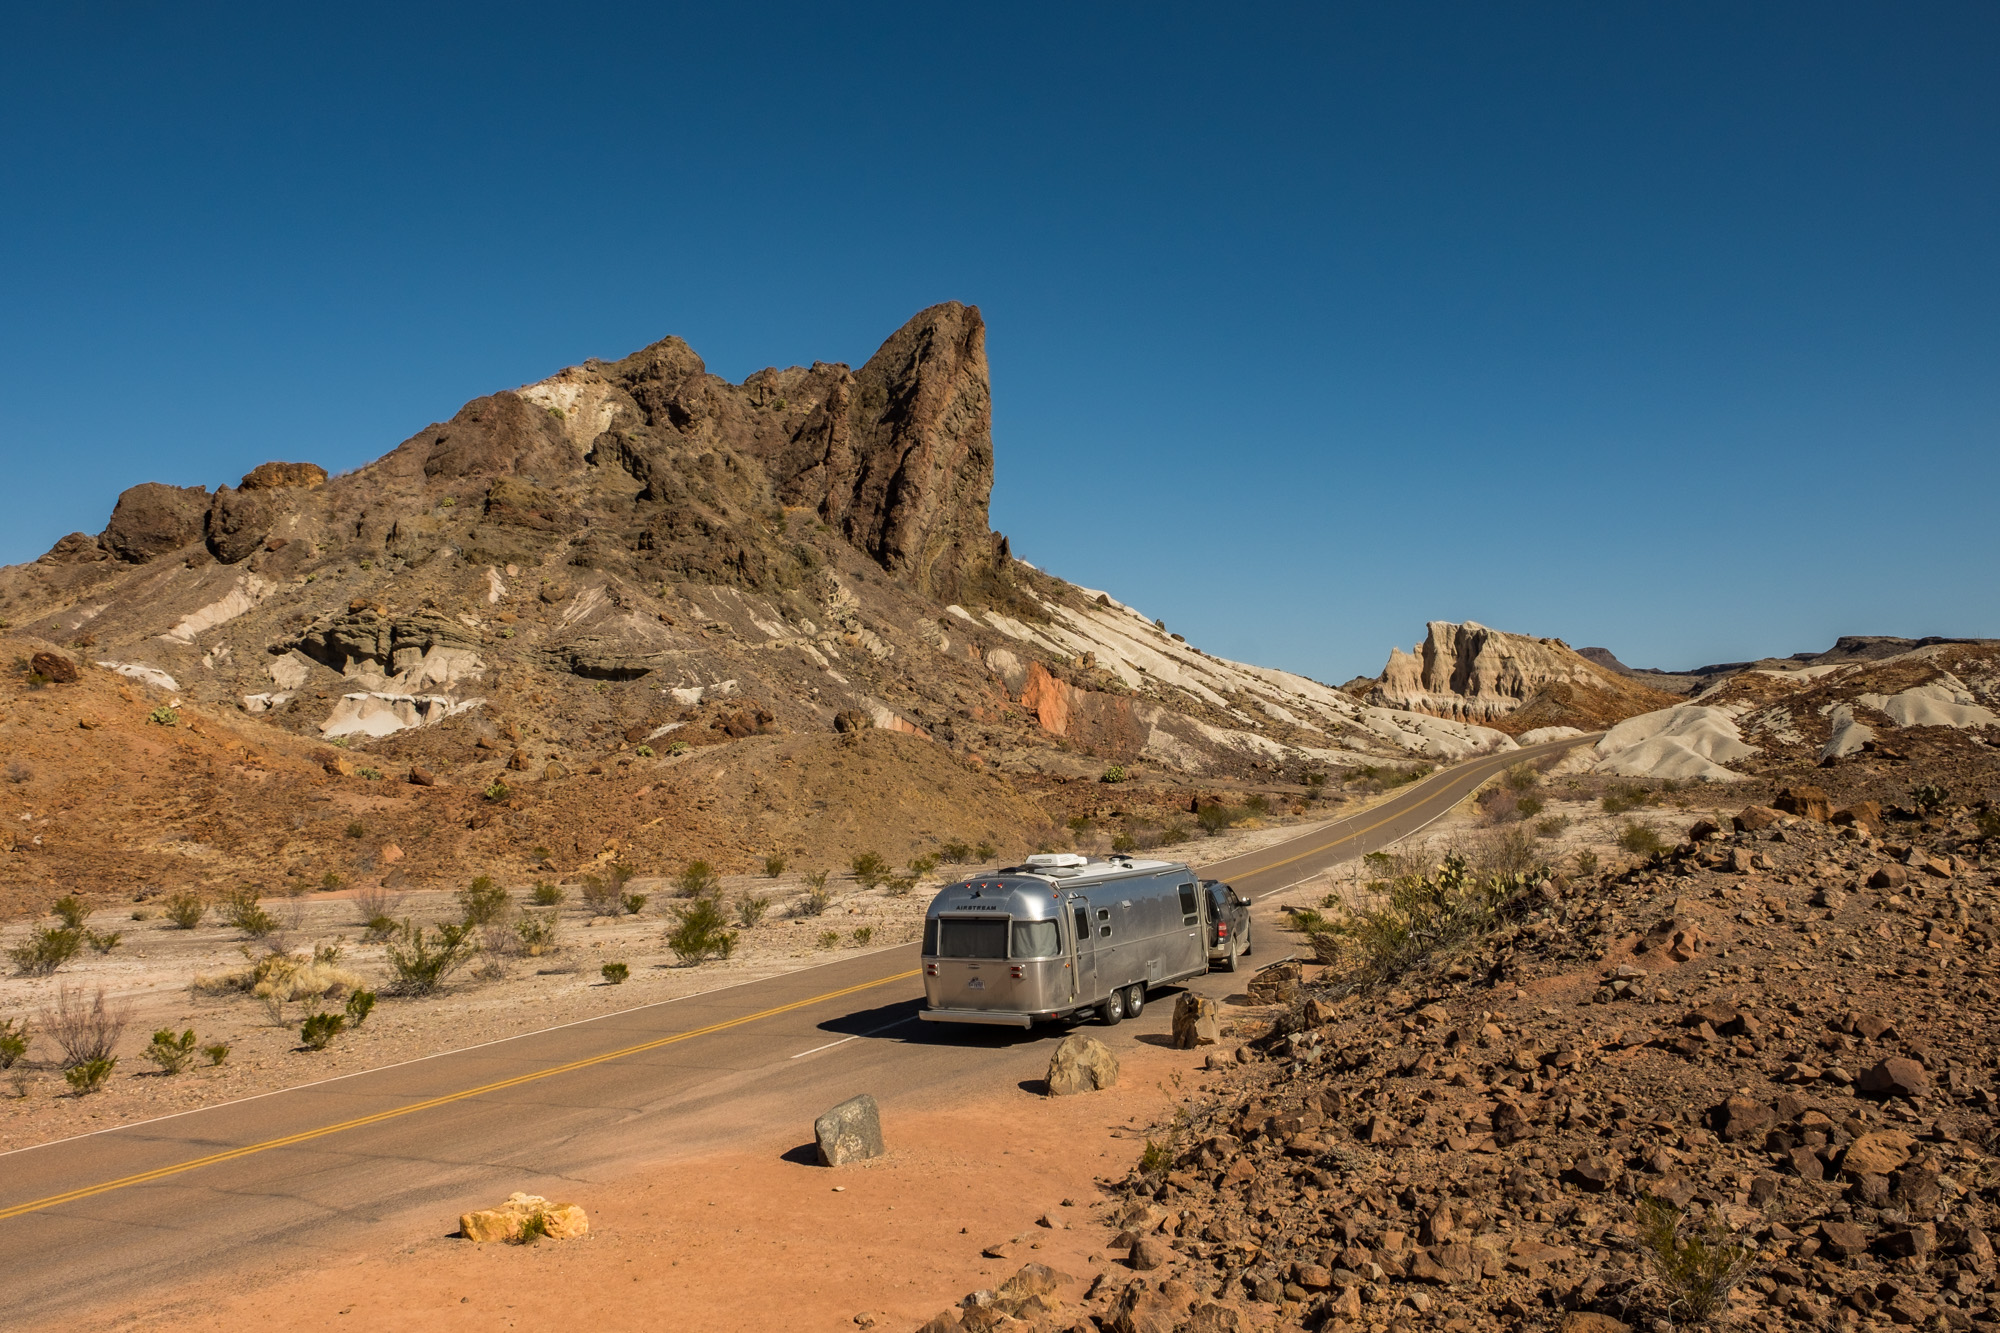 Wally (our Airstream) wanted to stop for the beautiful views.